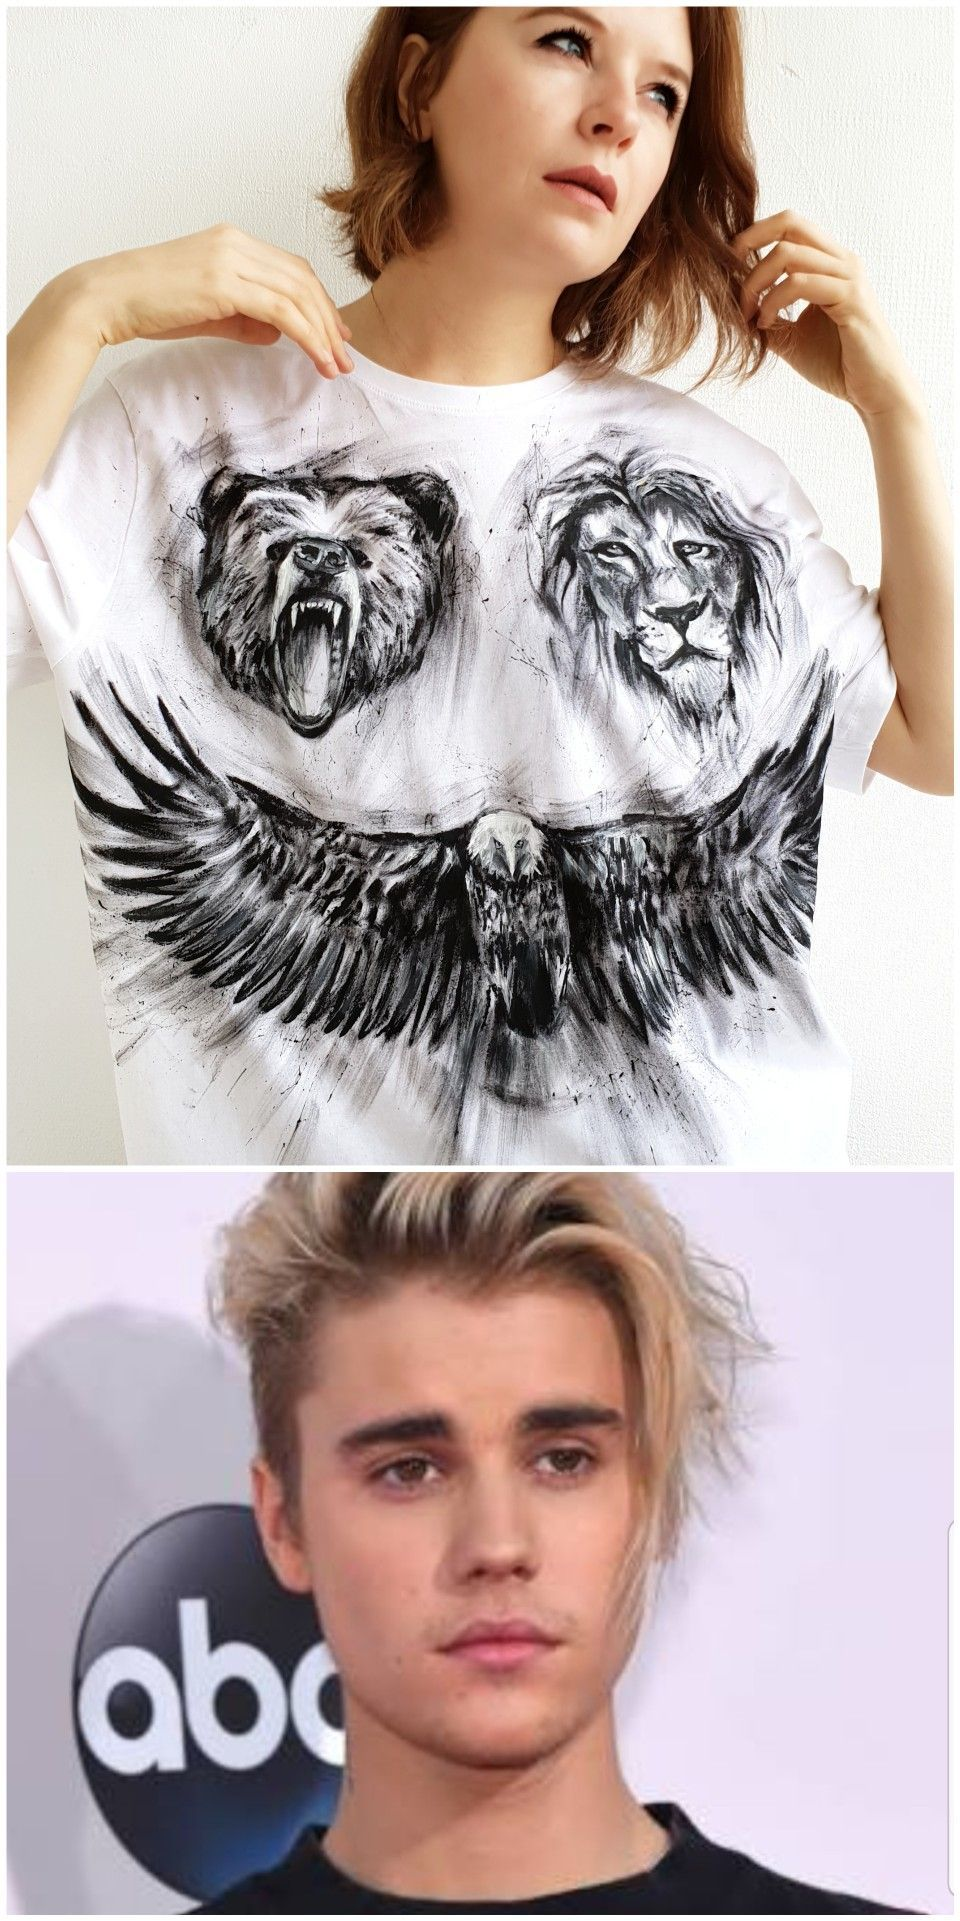 Watch me paint Justin Bieber's tattoos on a tshirt in 2020